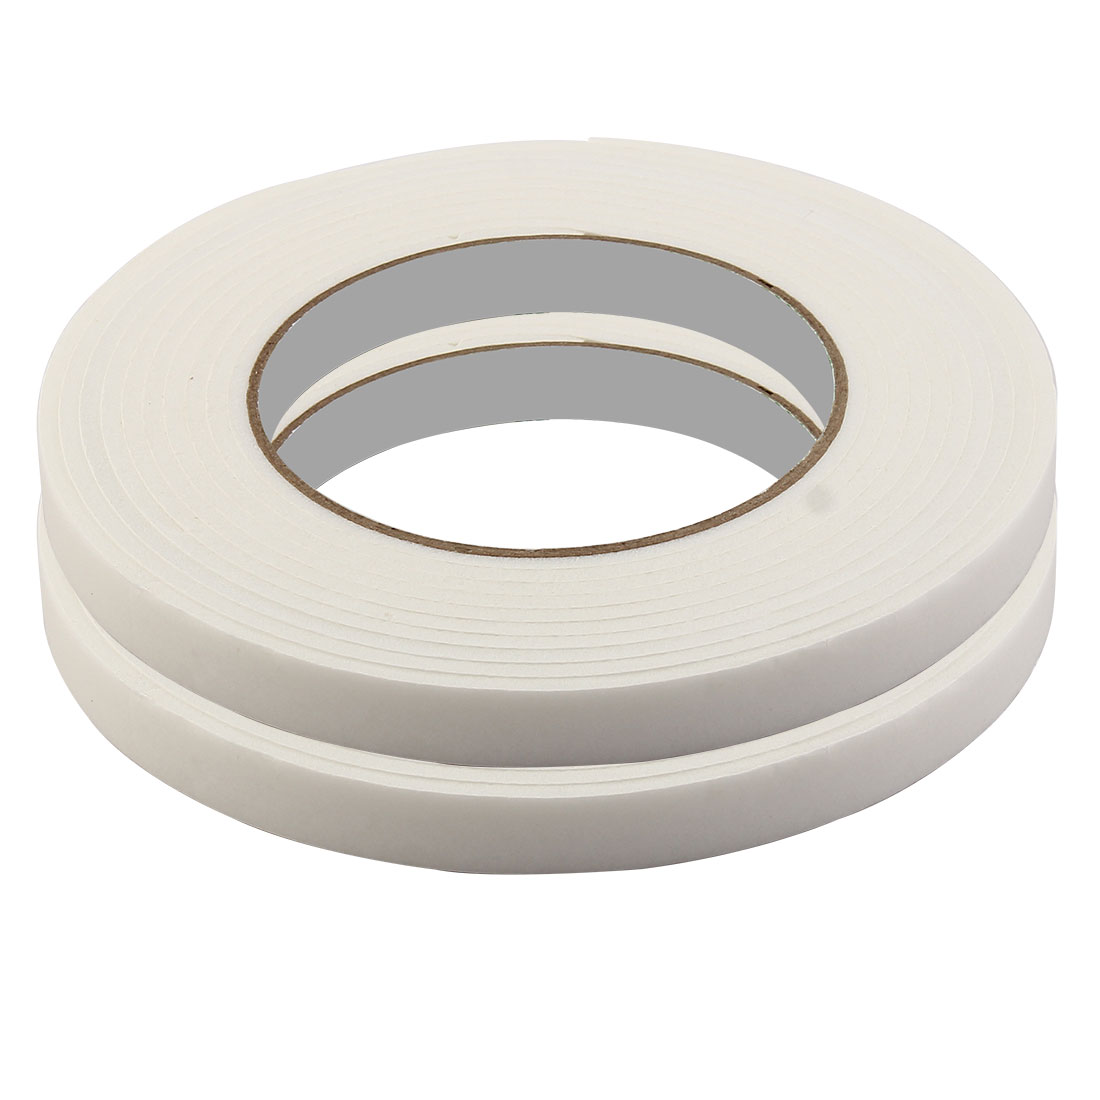 Home Sponge Strong Double Sided Sticky Adhesive Tape White 1.2cm x 4.6M 2 Rolls